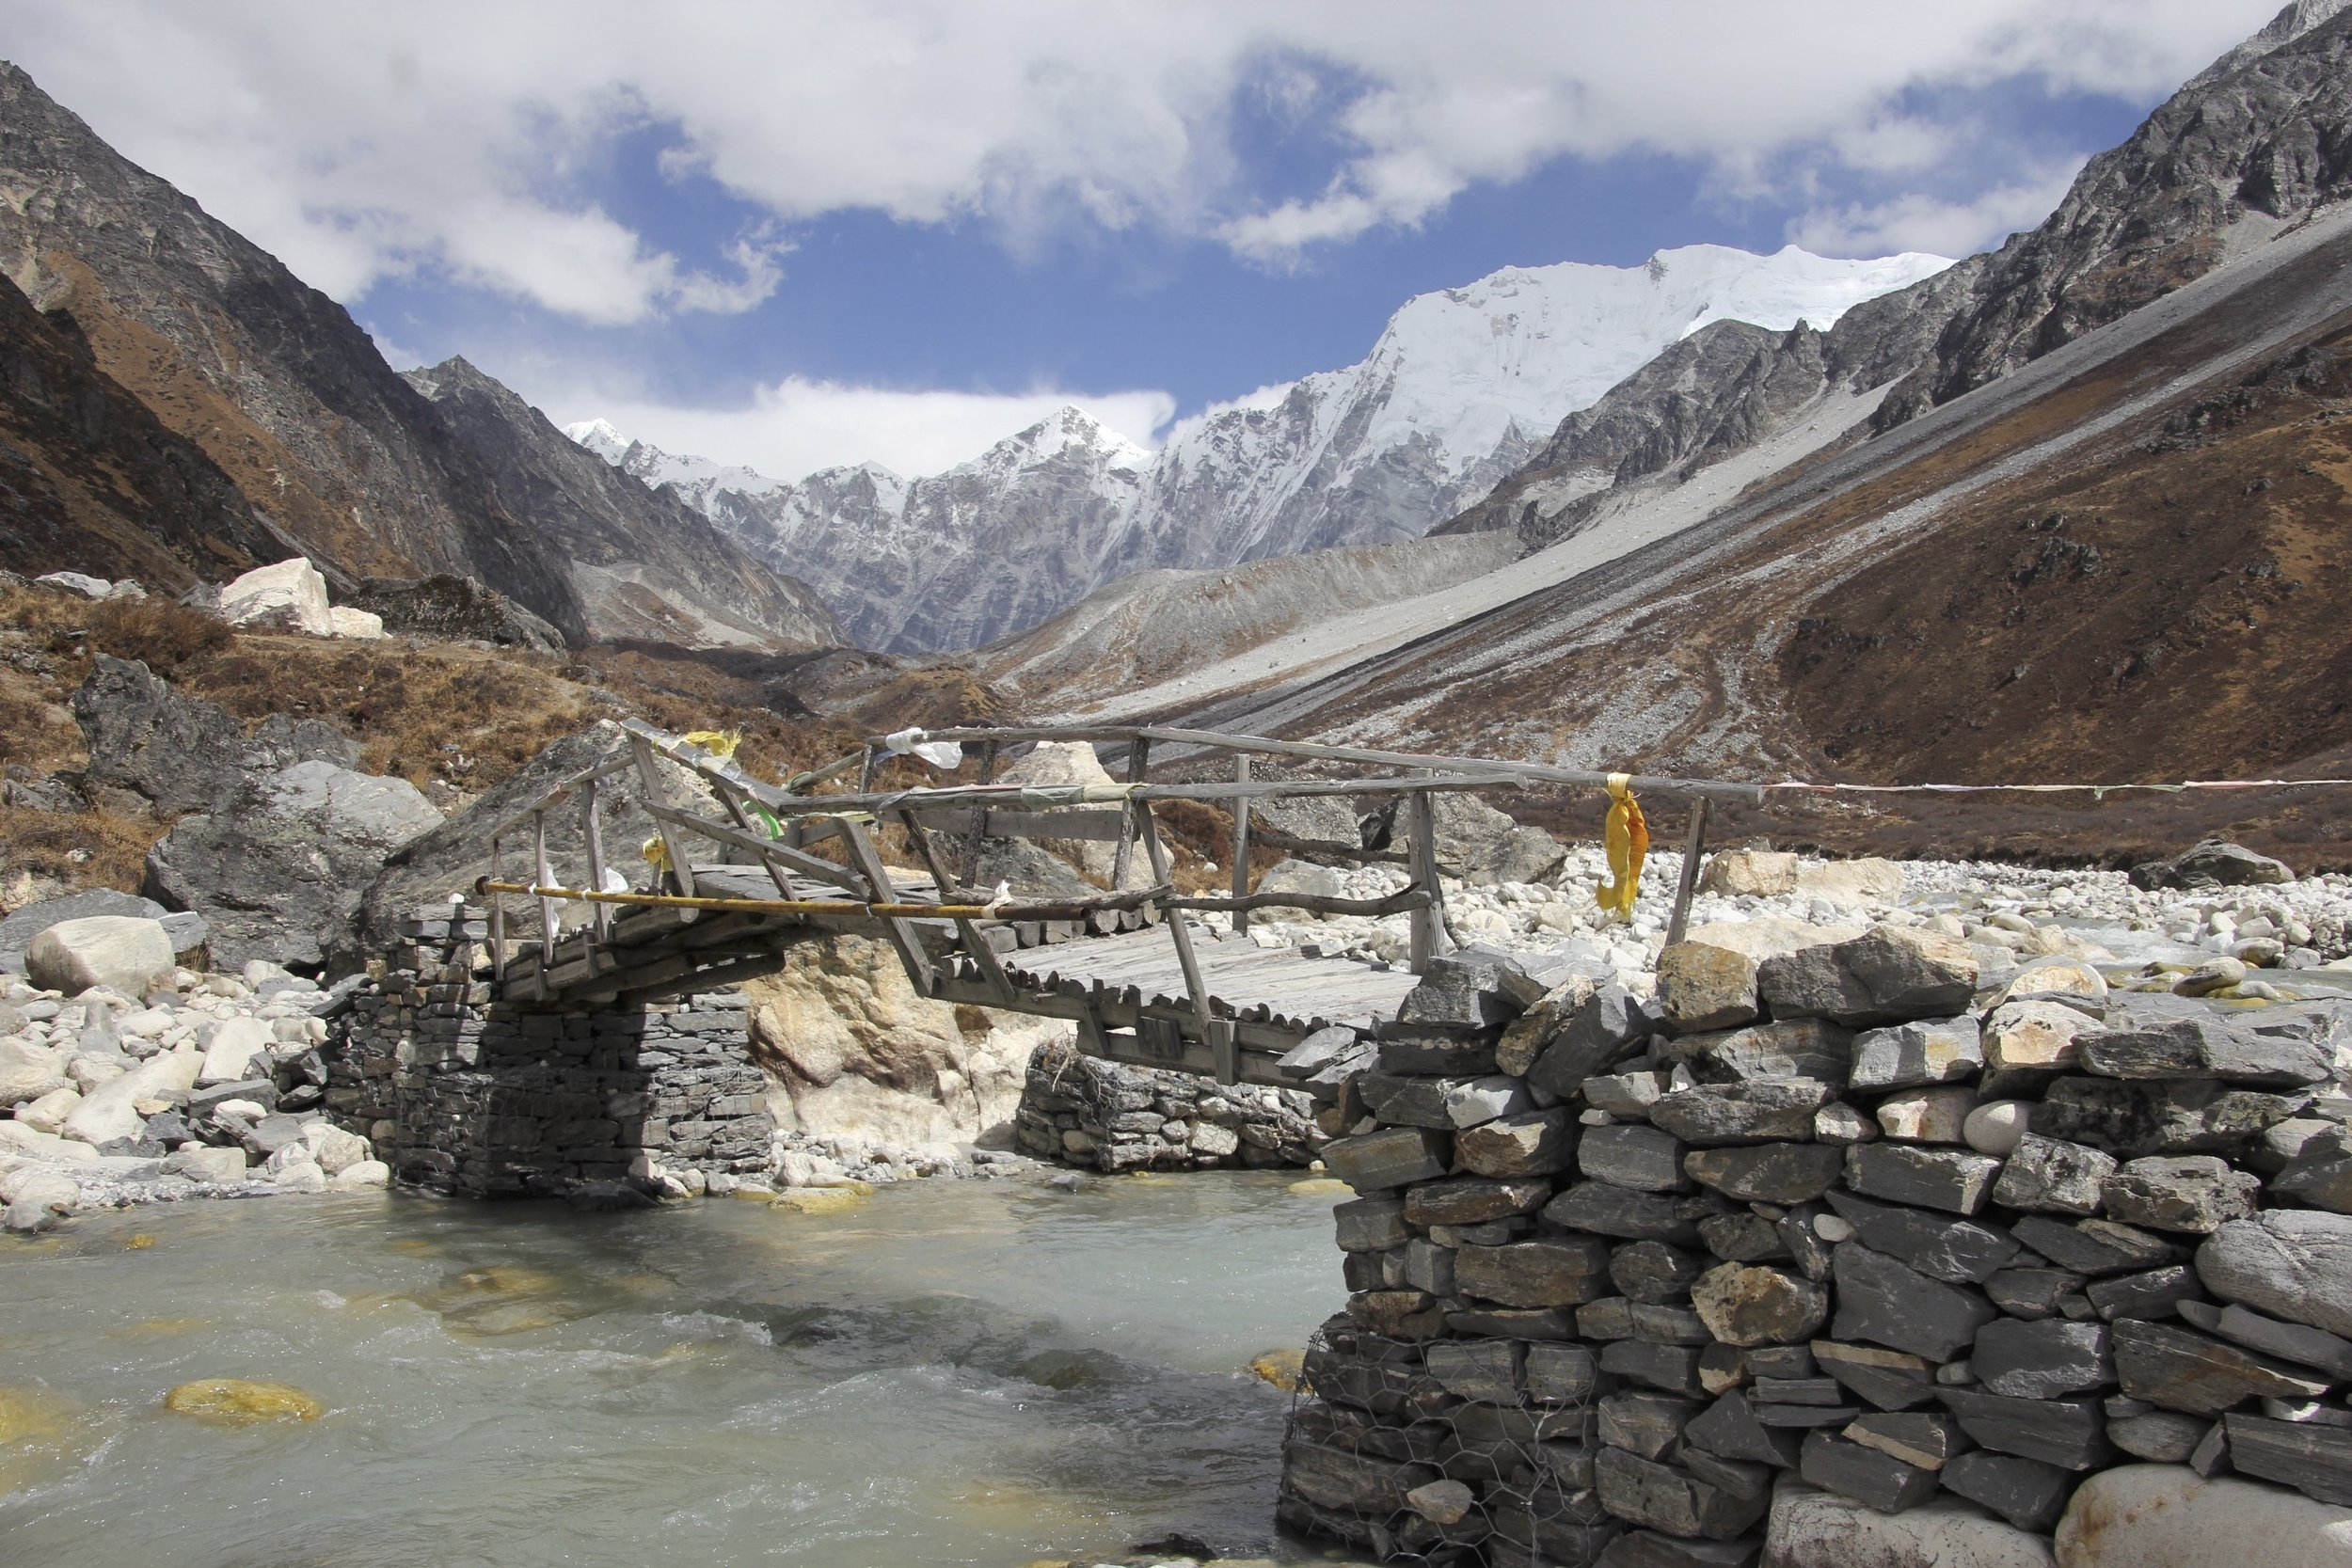 We were ready to ford the Langtang River but to our surprise there was this beautiful bridge. The snout of the Langtang Glacier is in the distance.